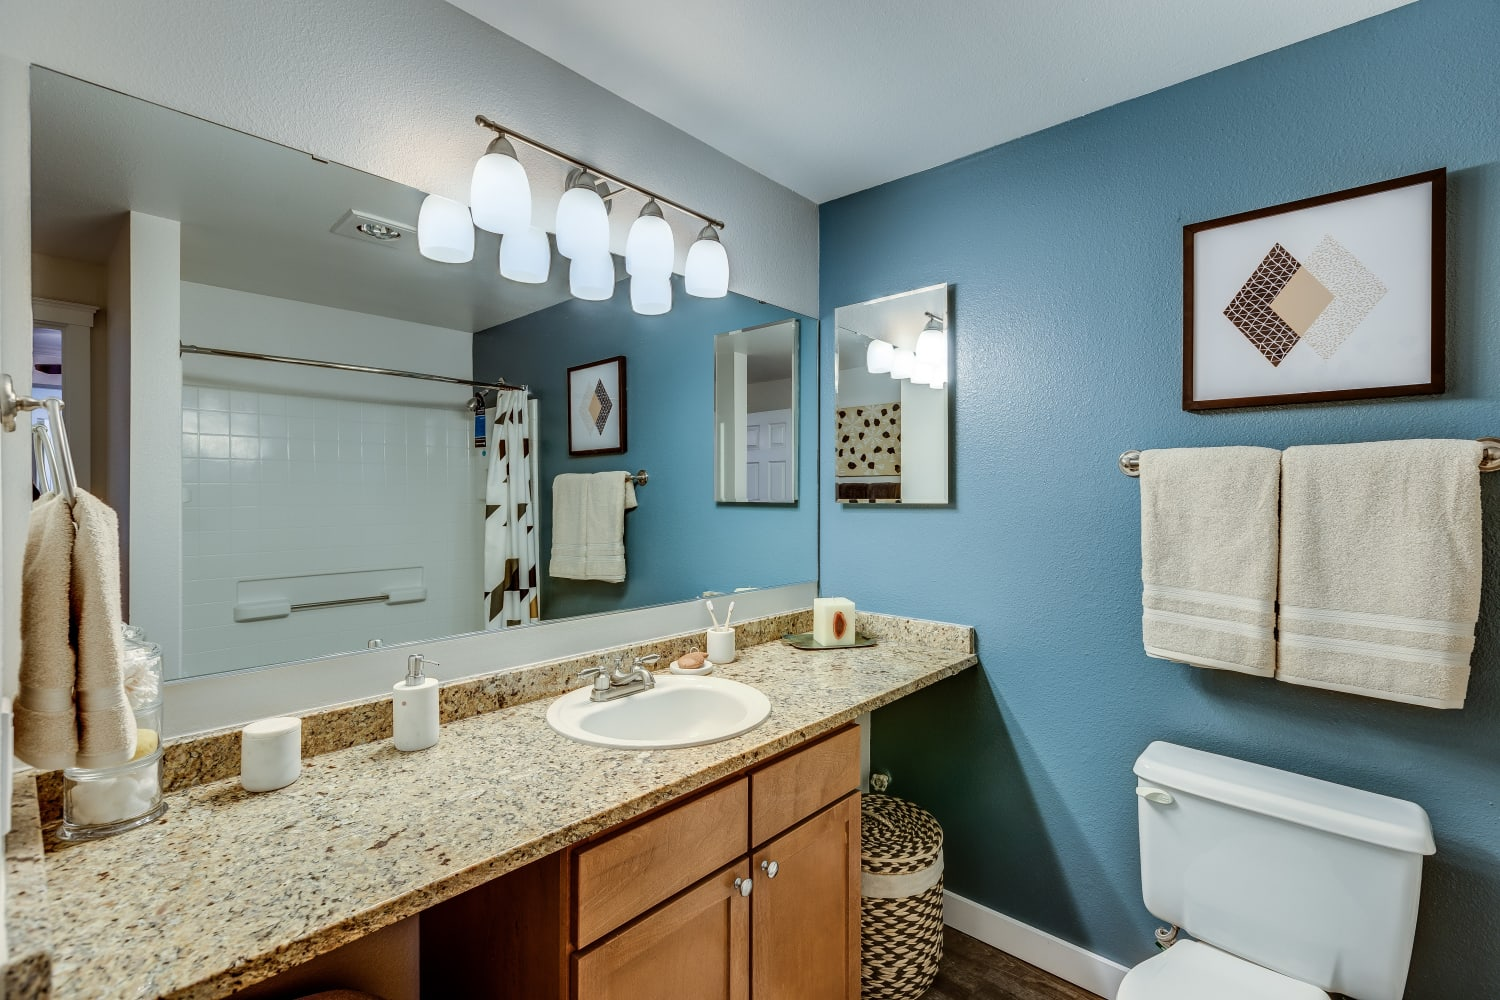 Bathroom with ample counter space at The Preserve at Forbes Creek in Kirkland, Washington